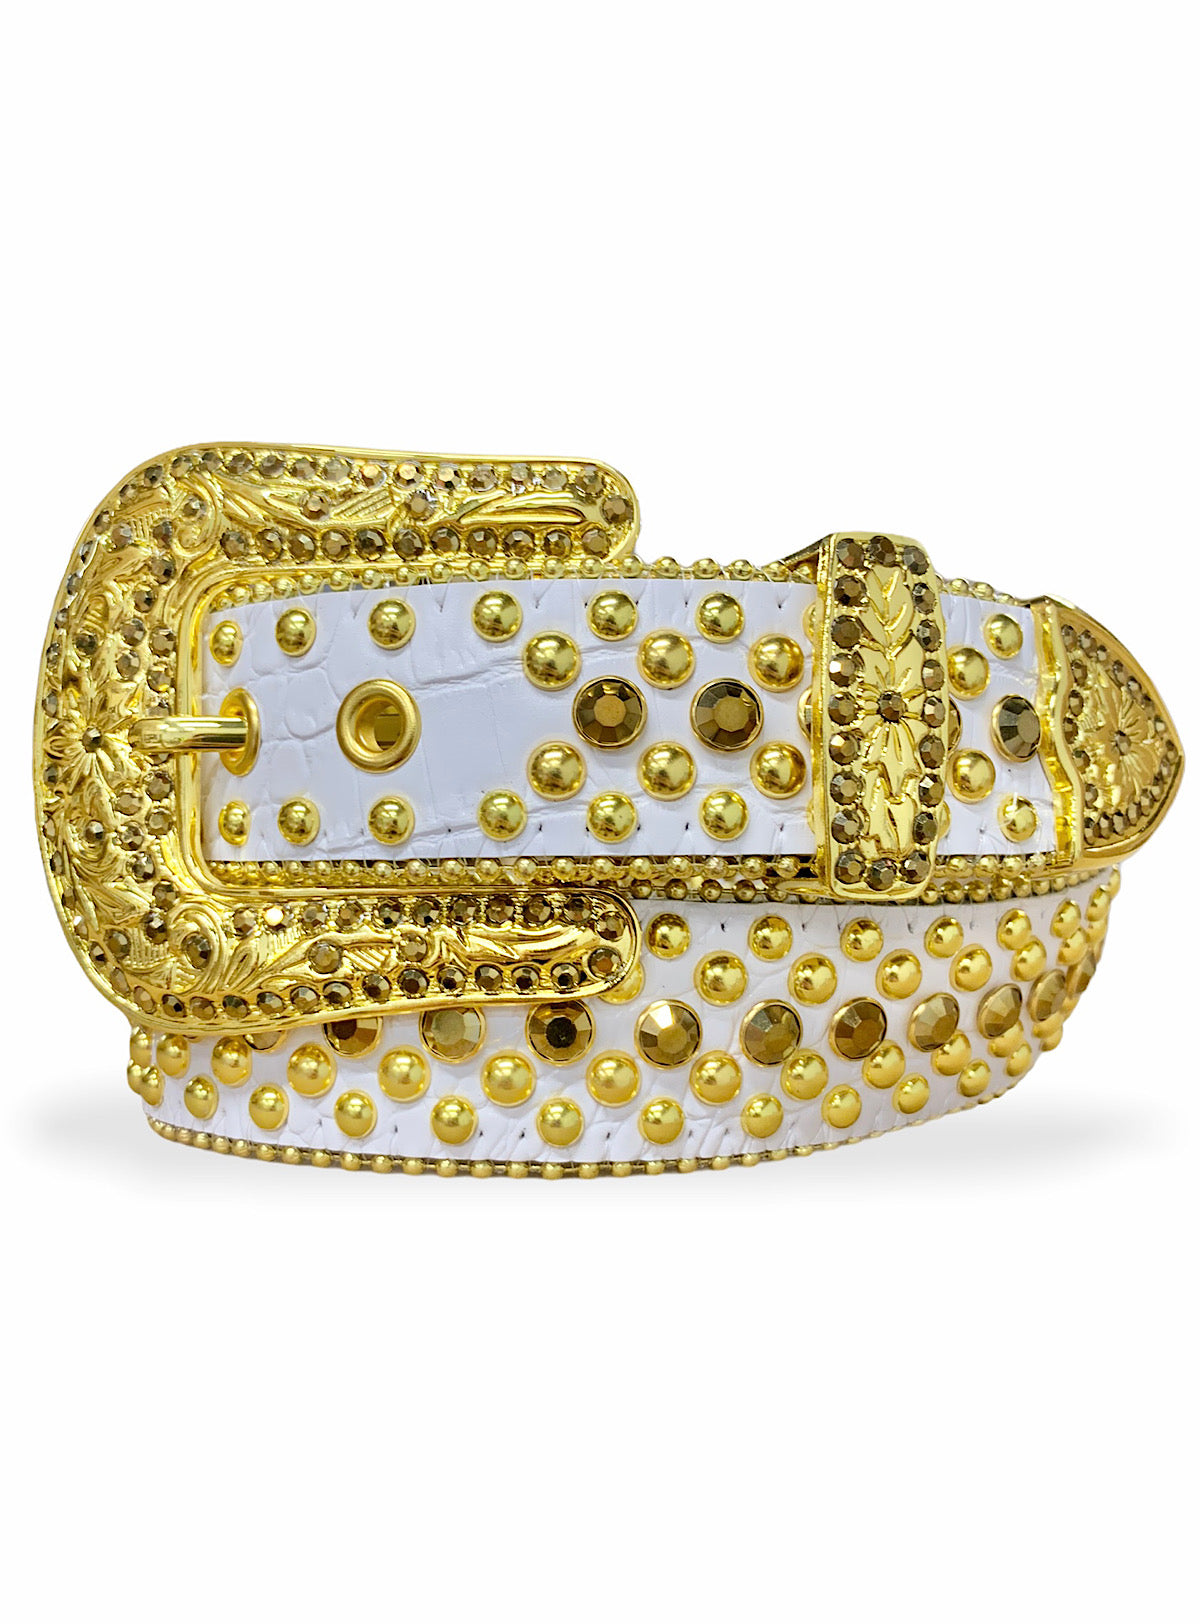 Karma Belt - Stones And Studs - White Leather With Gold Stones